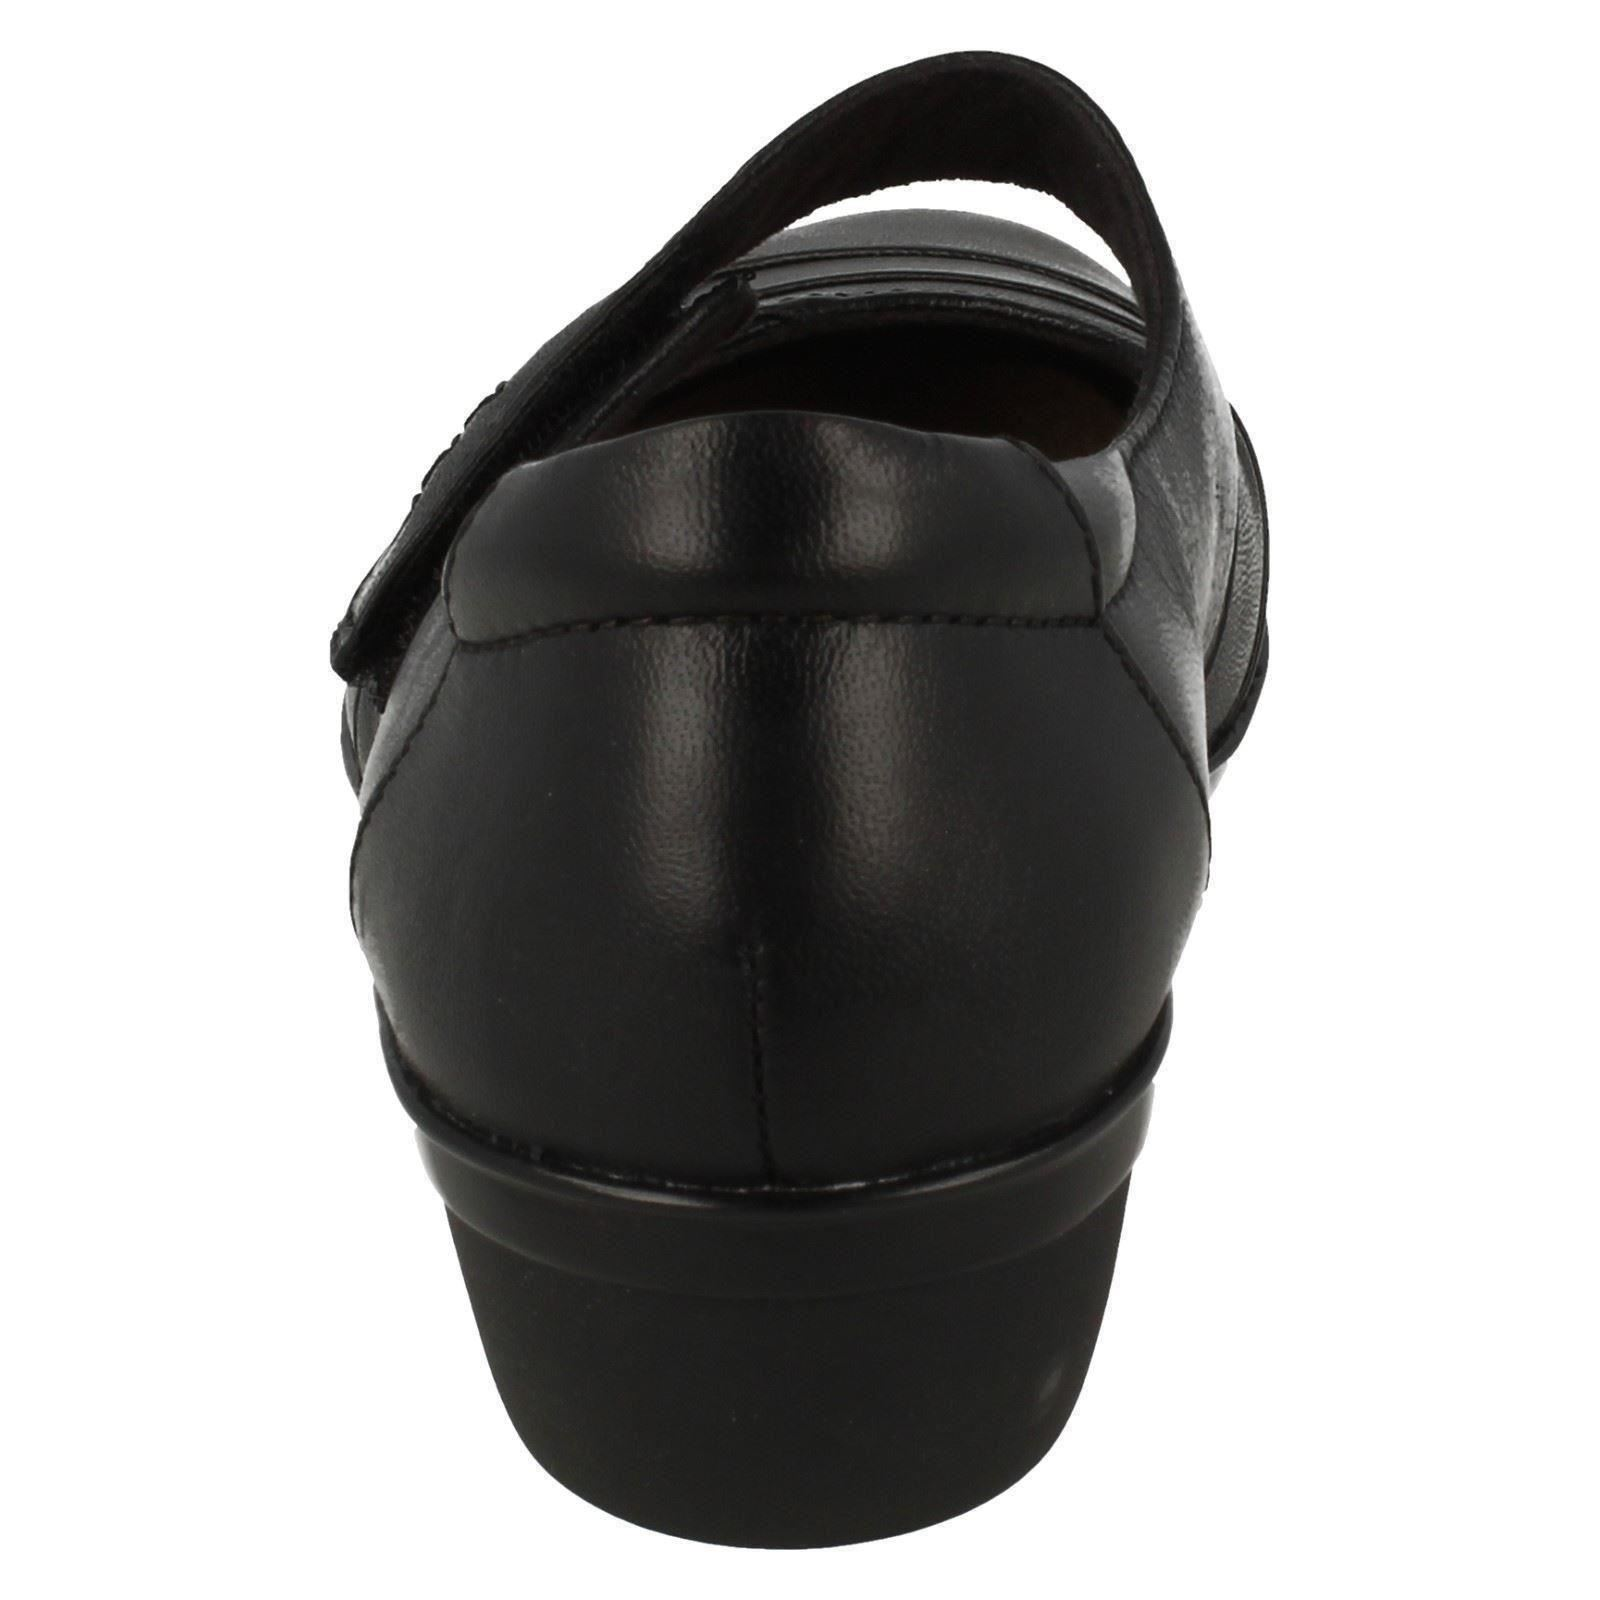 Formales Cuero Clarks Mujer Kennon Zapatos Everlay vxqwt0Fpgw